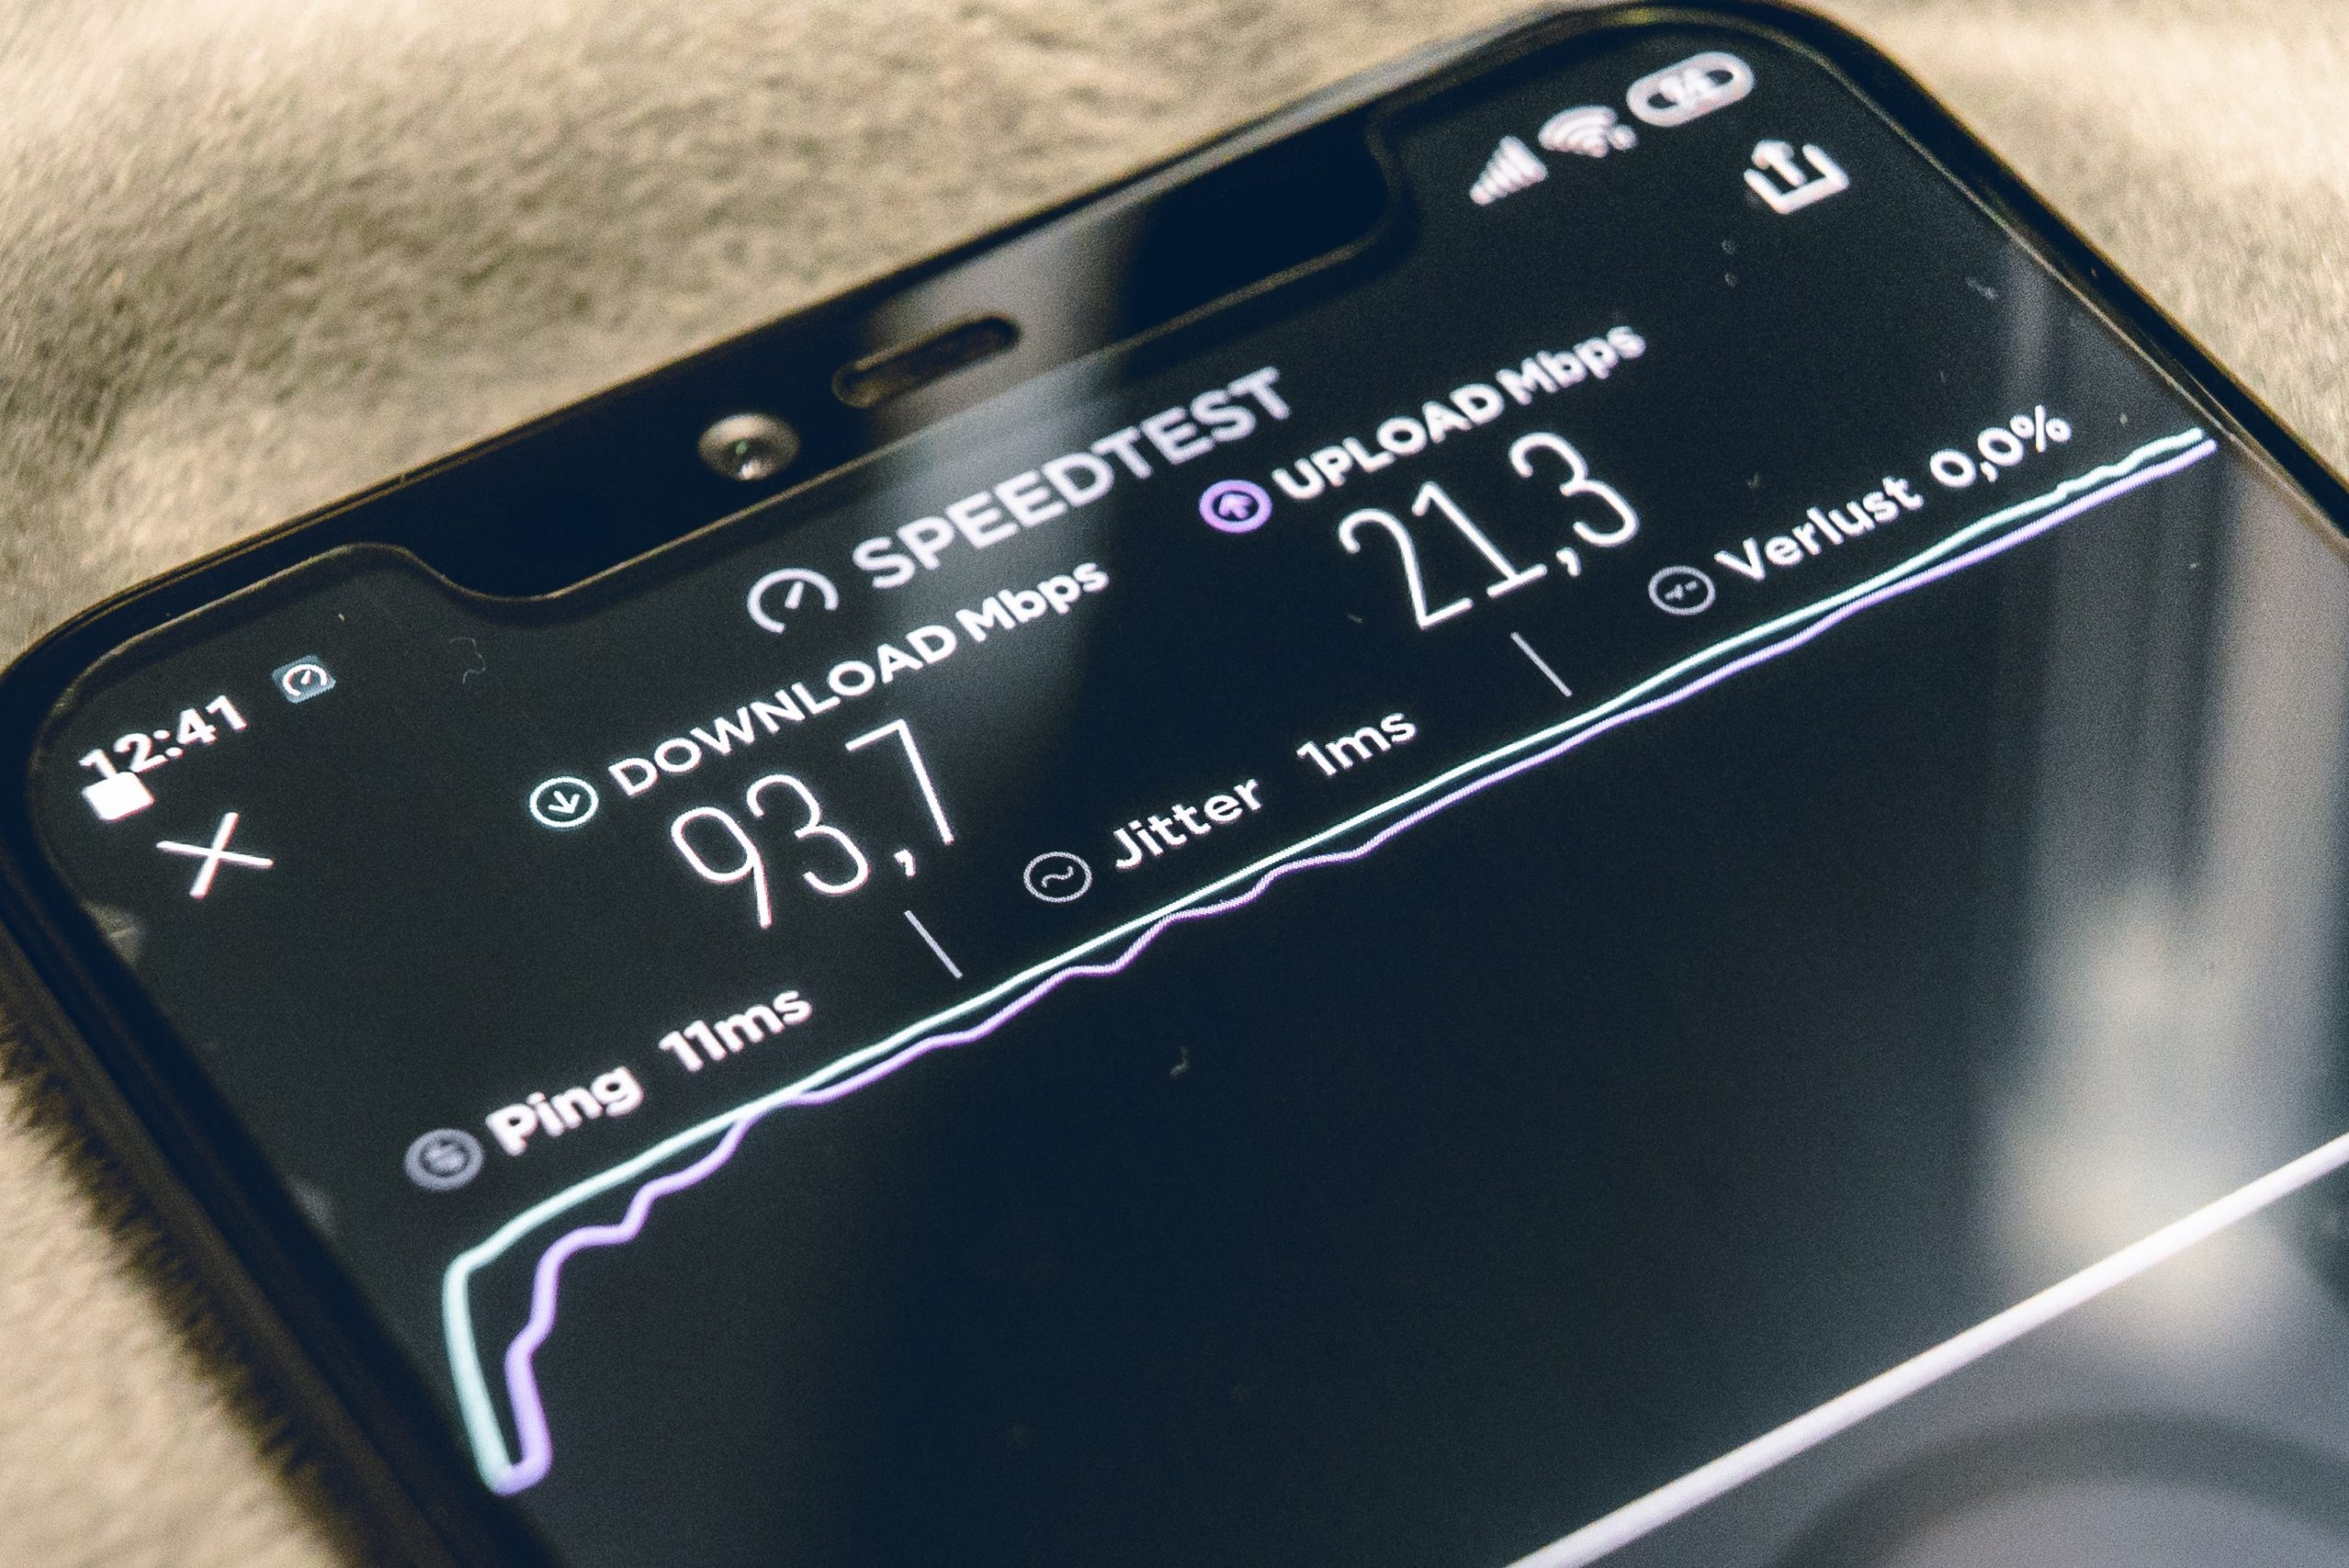 an image of a mobile phone showing data speed to represent mobile service providers and their data service.